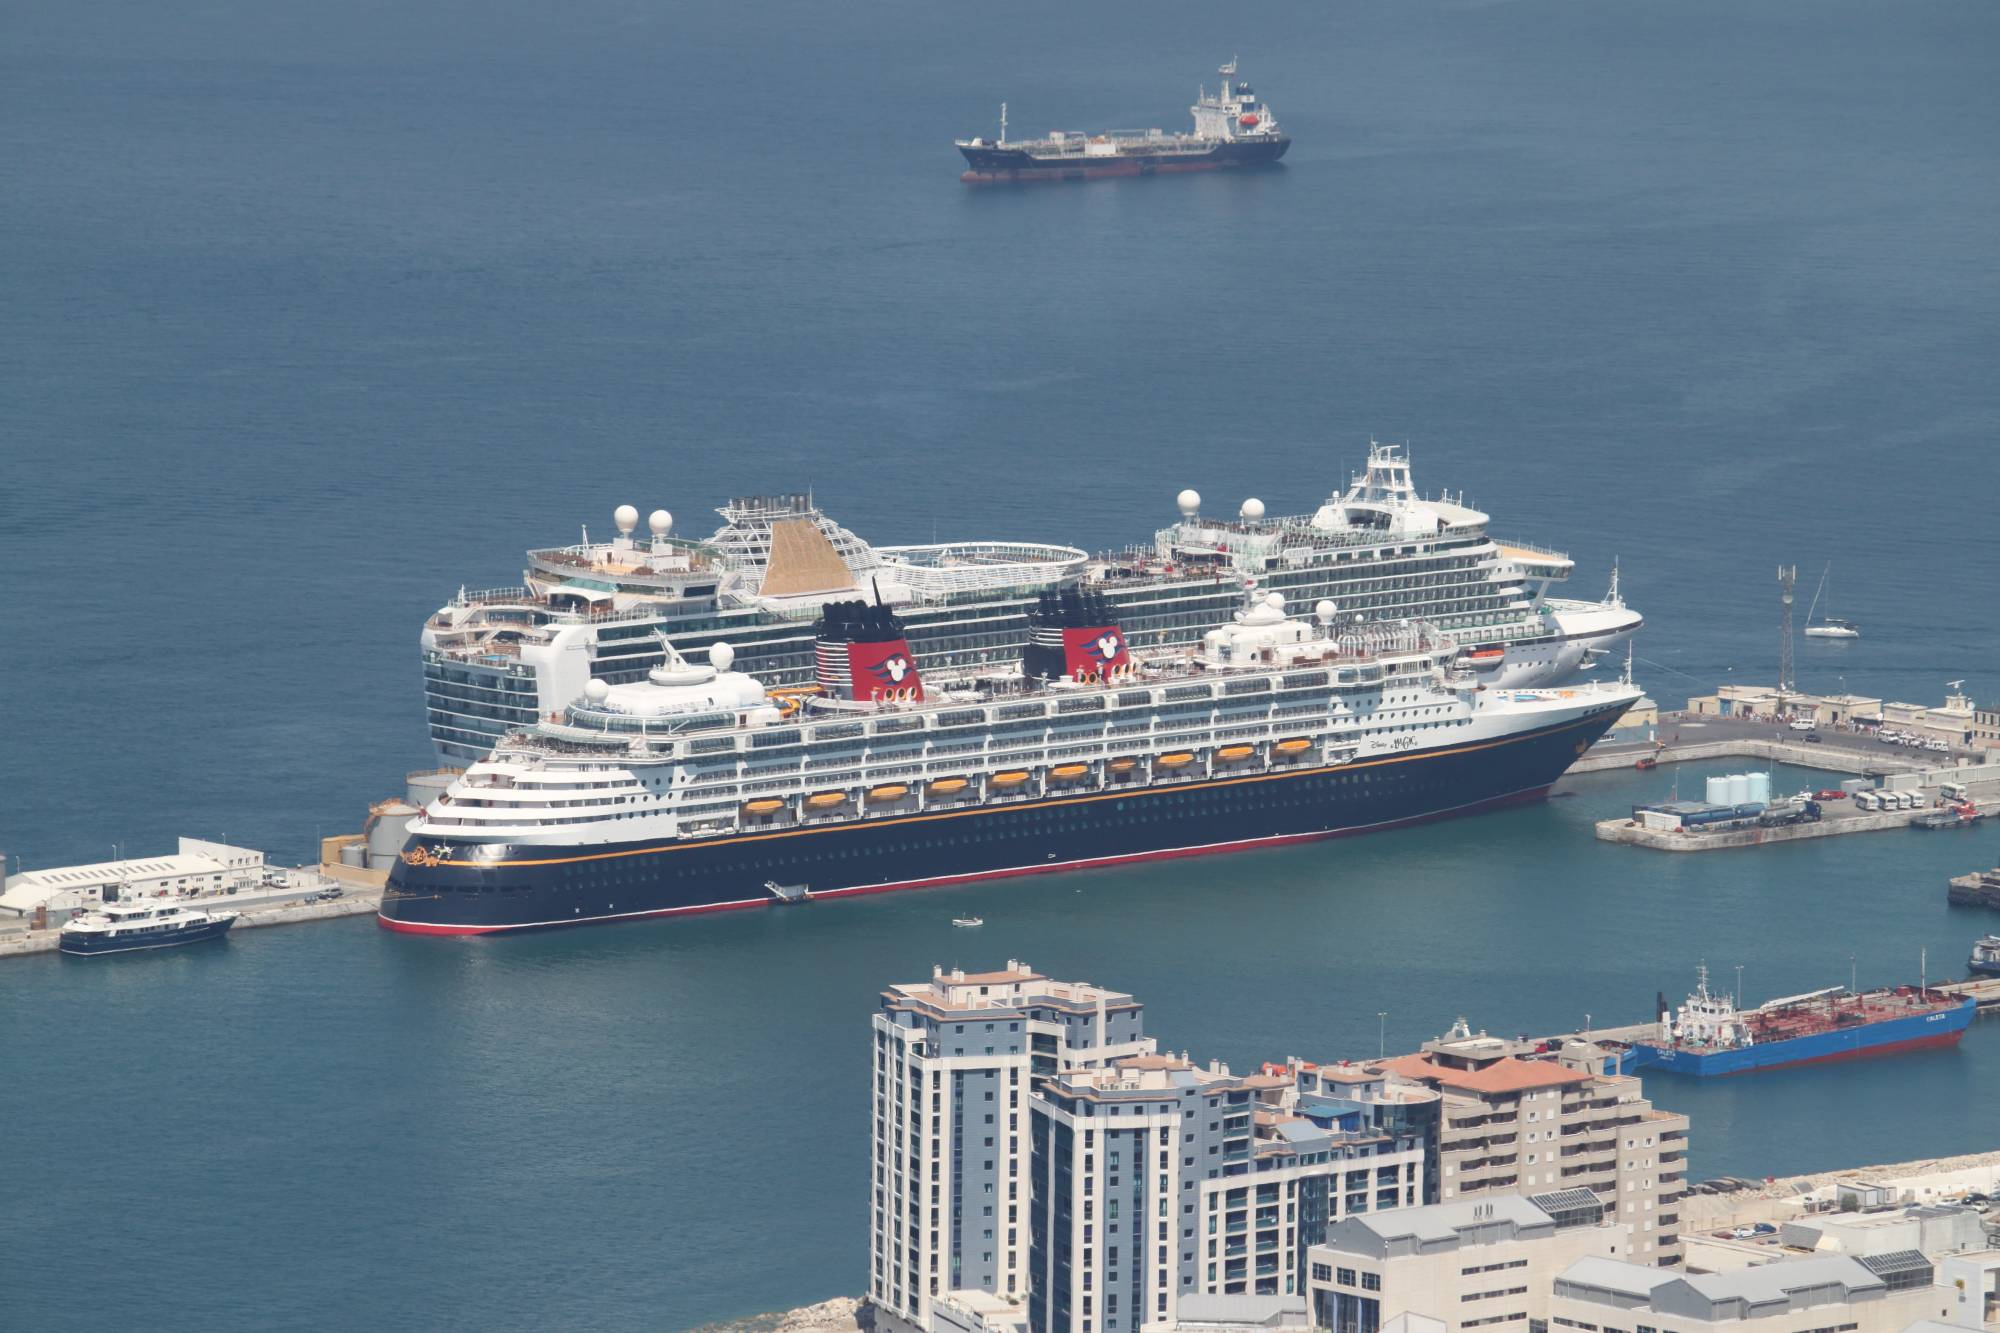 Discover which Port Adventures are right for your Disney Cruise |PassPorter.com